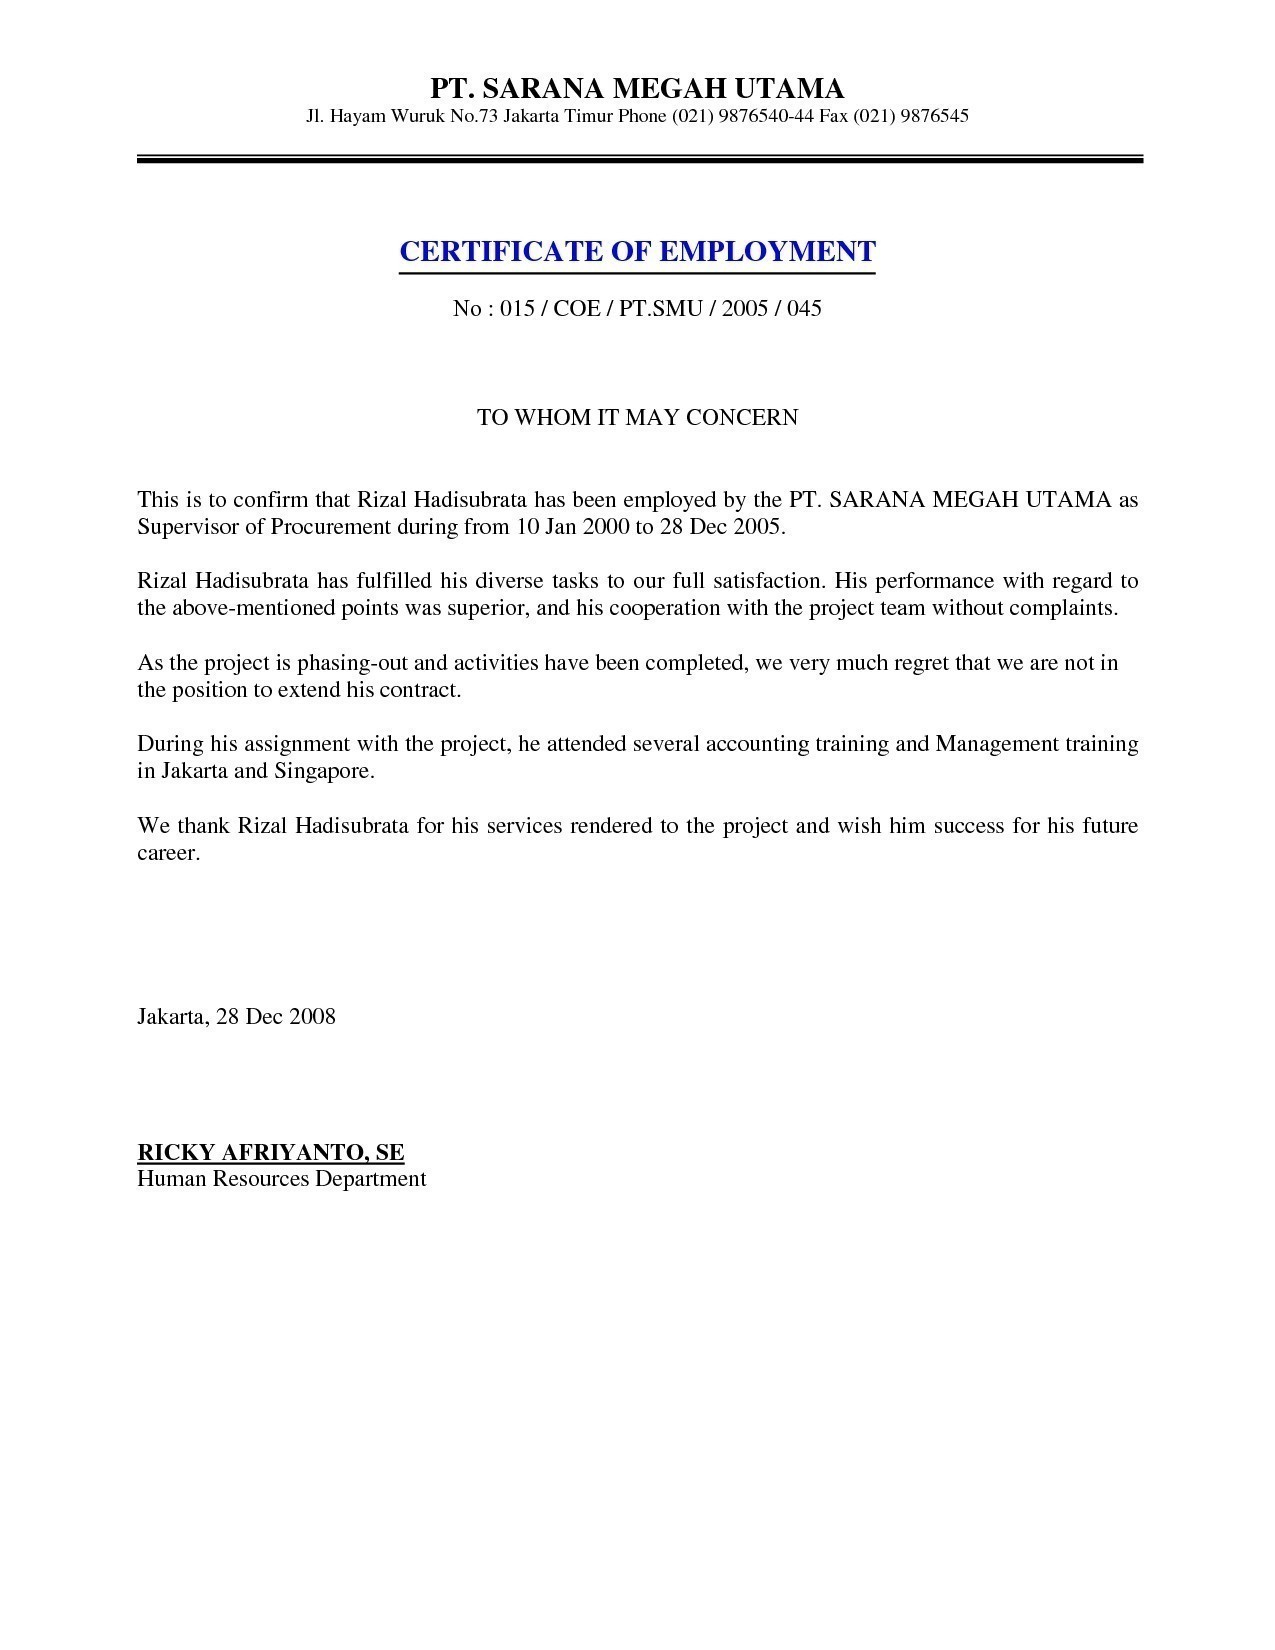 Statement Of Service Letter Template - Refrence Sample Certificate Employment with Salary Indicated Best